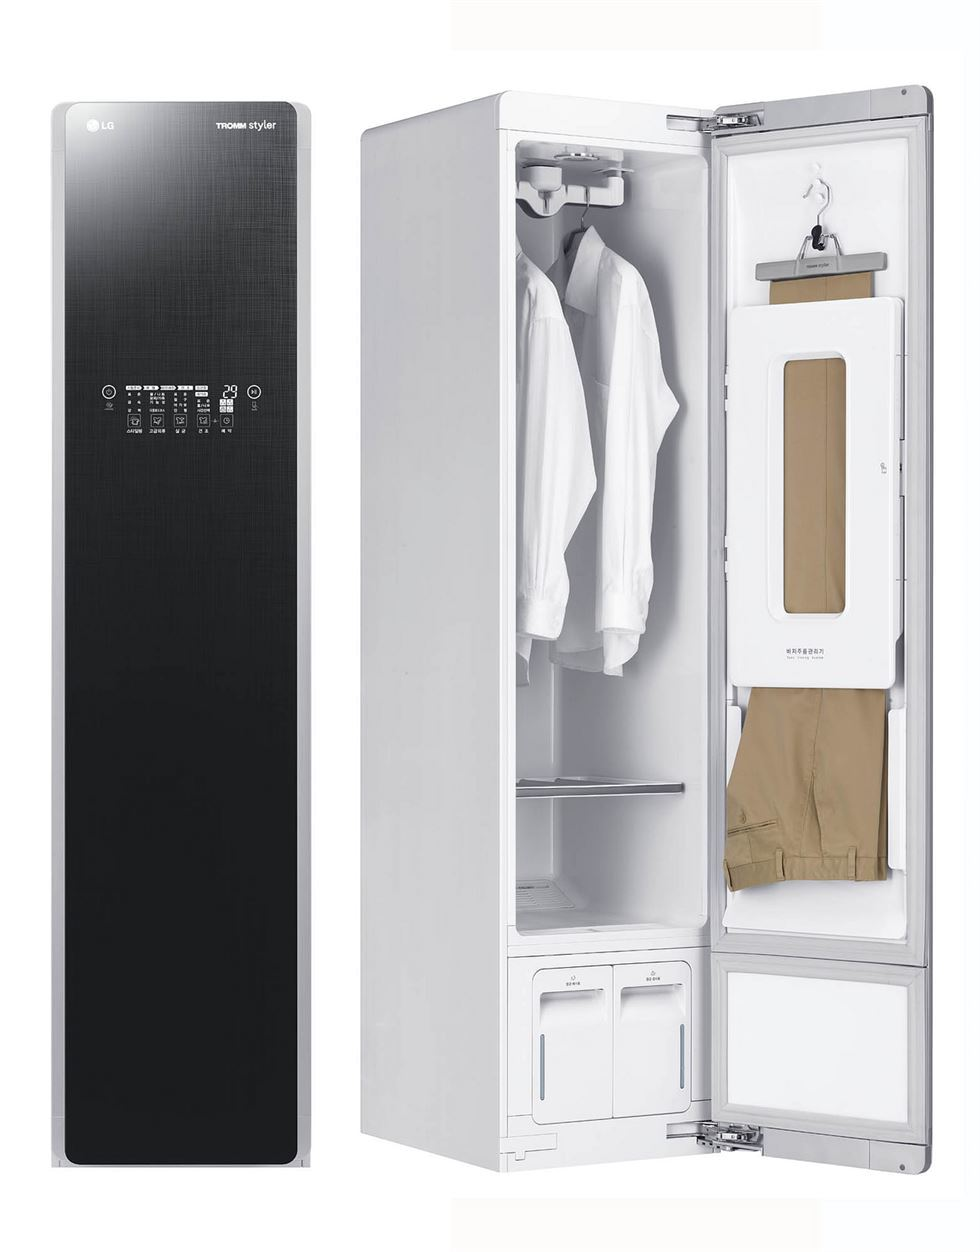 Lg Faces Growing Competition In Steam Closet Market